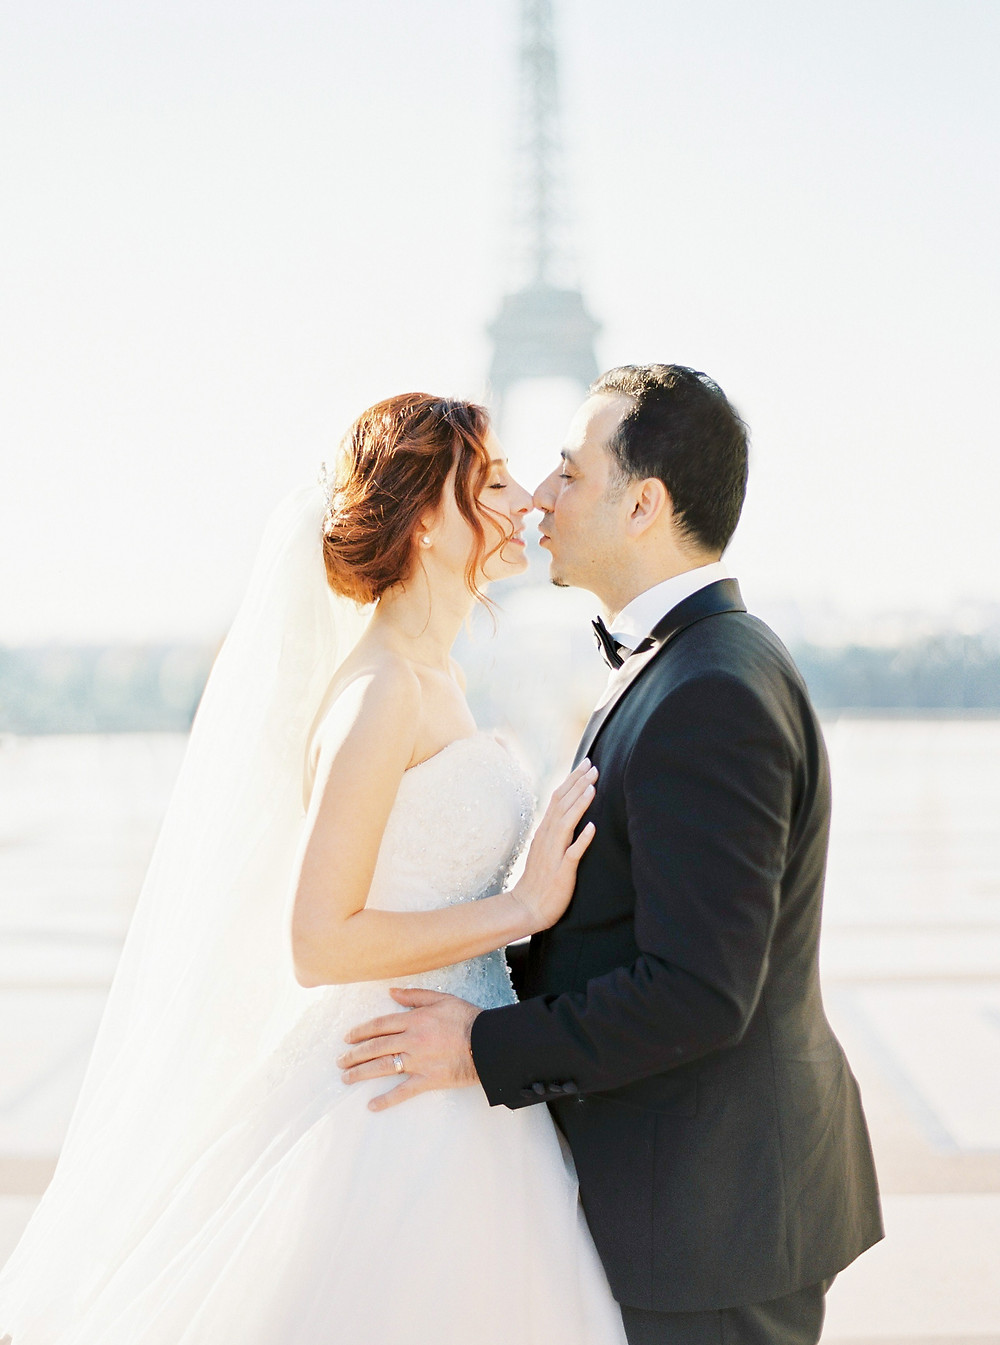 Paris wedding photoshoot near the Eiffel Tower